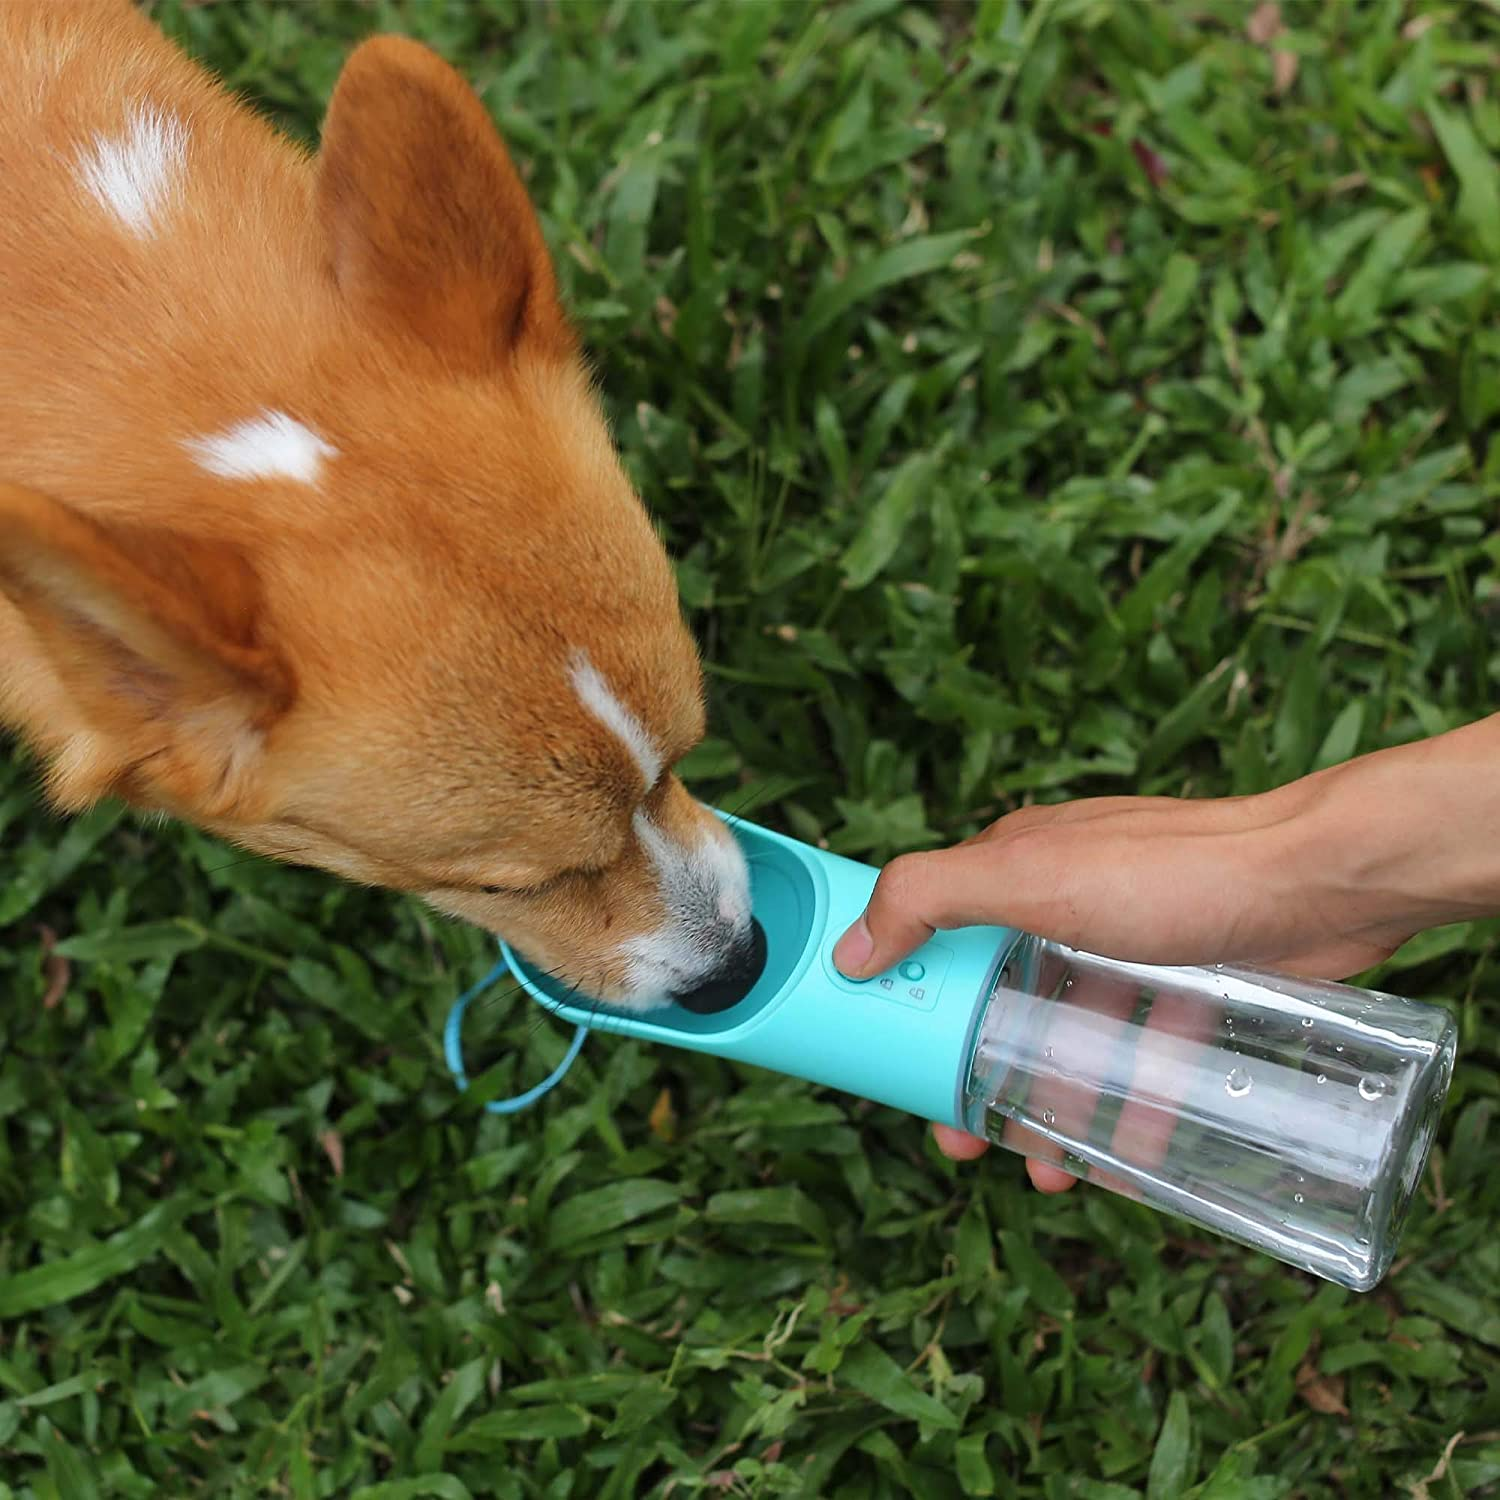 Daily Deals On Pet Essentials Every Animal Lover Should Have - Dog Water Bottle